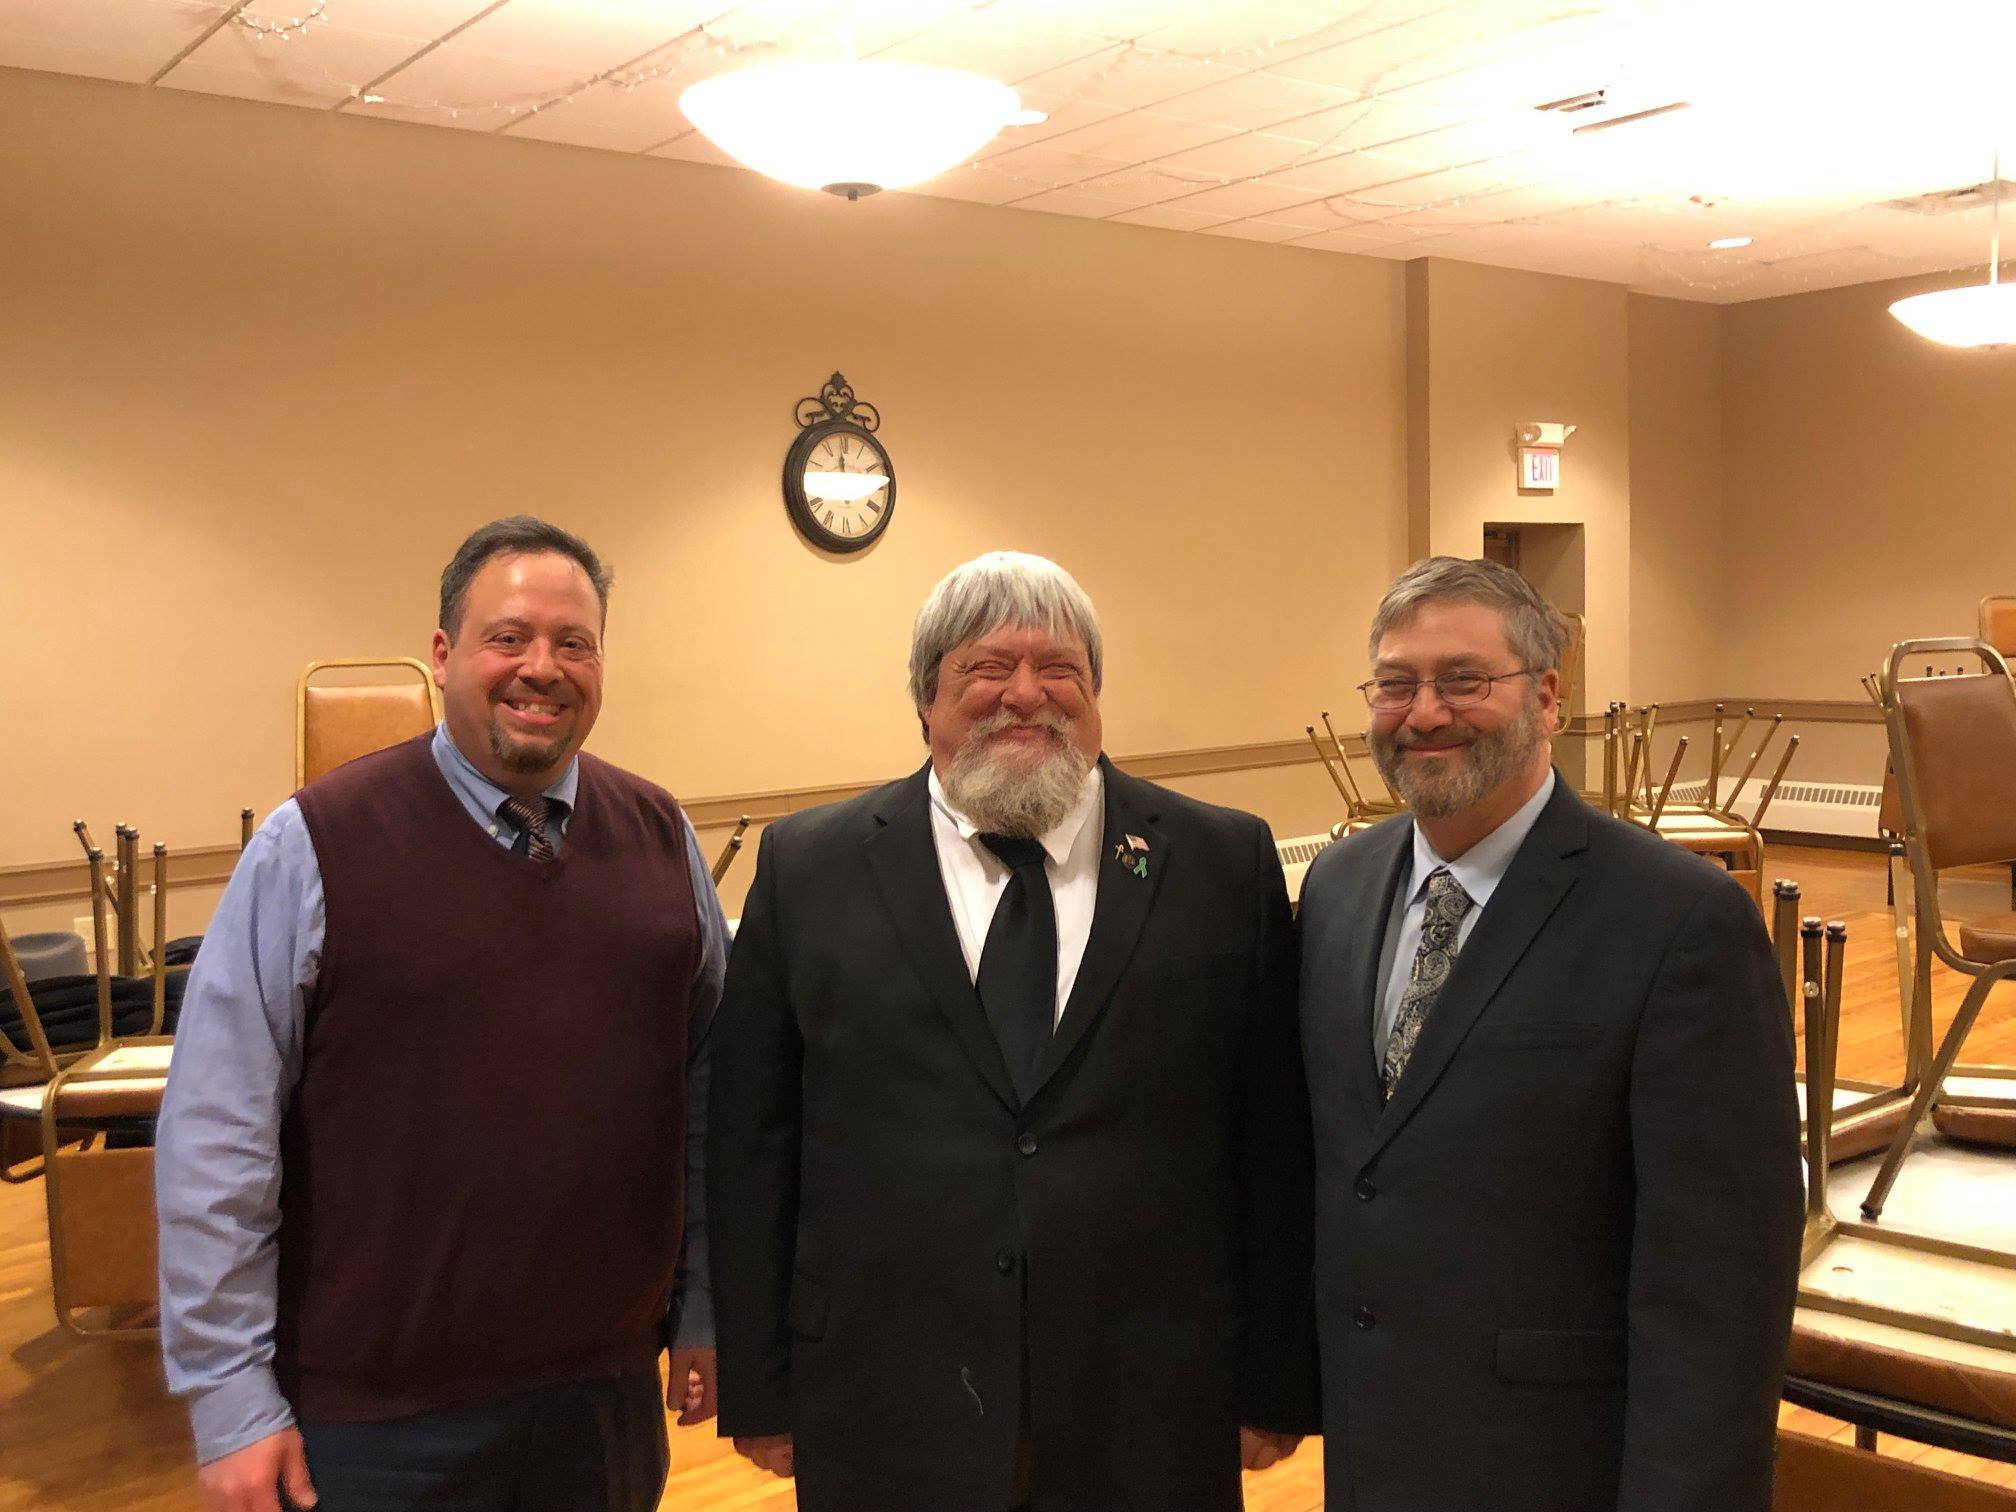 On February 25, 2019, Florence Lodge #281 conferred the Entered Apprentice Degree on Brian D. Christiansen. Charlie Odorizzi (right) presided as Master. Rex Waller from Shiloh Lodge #327 served as Senior Warden and Chrisian Soseman from Mercer Lodge #290 served as Junior Warden. The 1st section lecture was given by David Kipp and Jeffrey Merriman. John Dimon from Mercer Lodge #290 gave the 2nd section lecture, and Paul Welsch gave the 3rd section lecture. Andrew Muska from Lininger Lodge #268 delivered the Charge. We look forward to welcoming Brian at Florence Lodge #281.